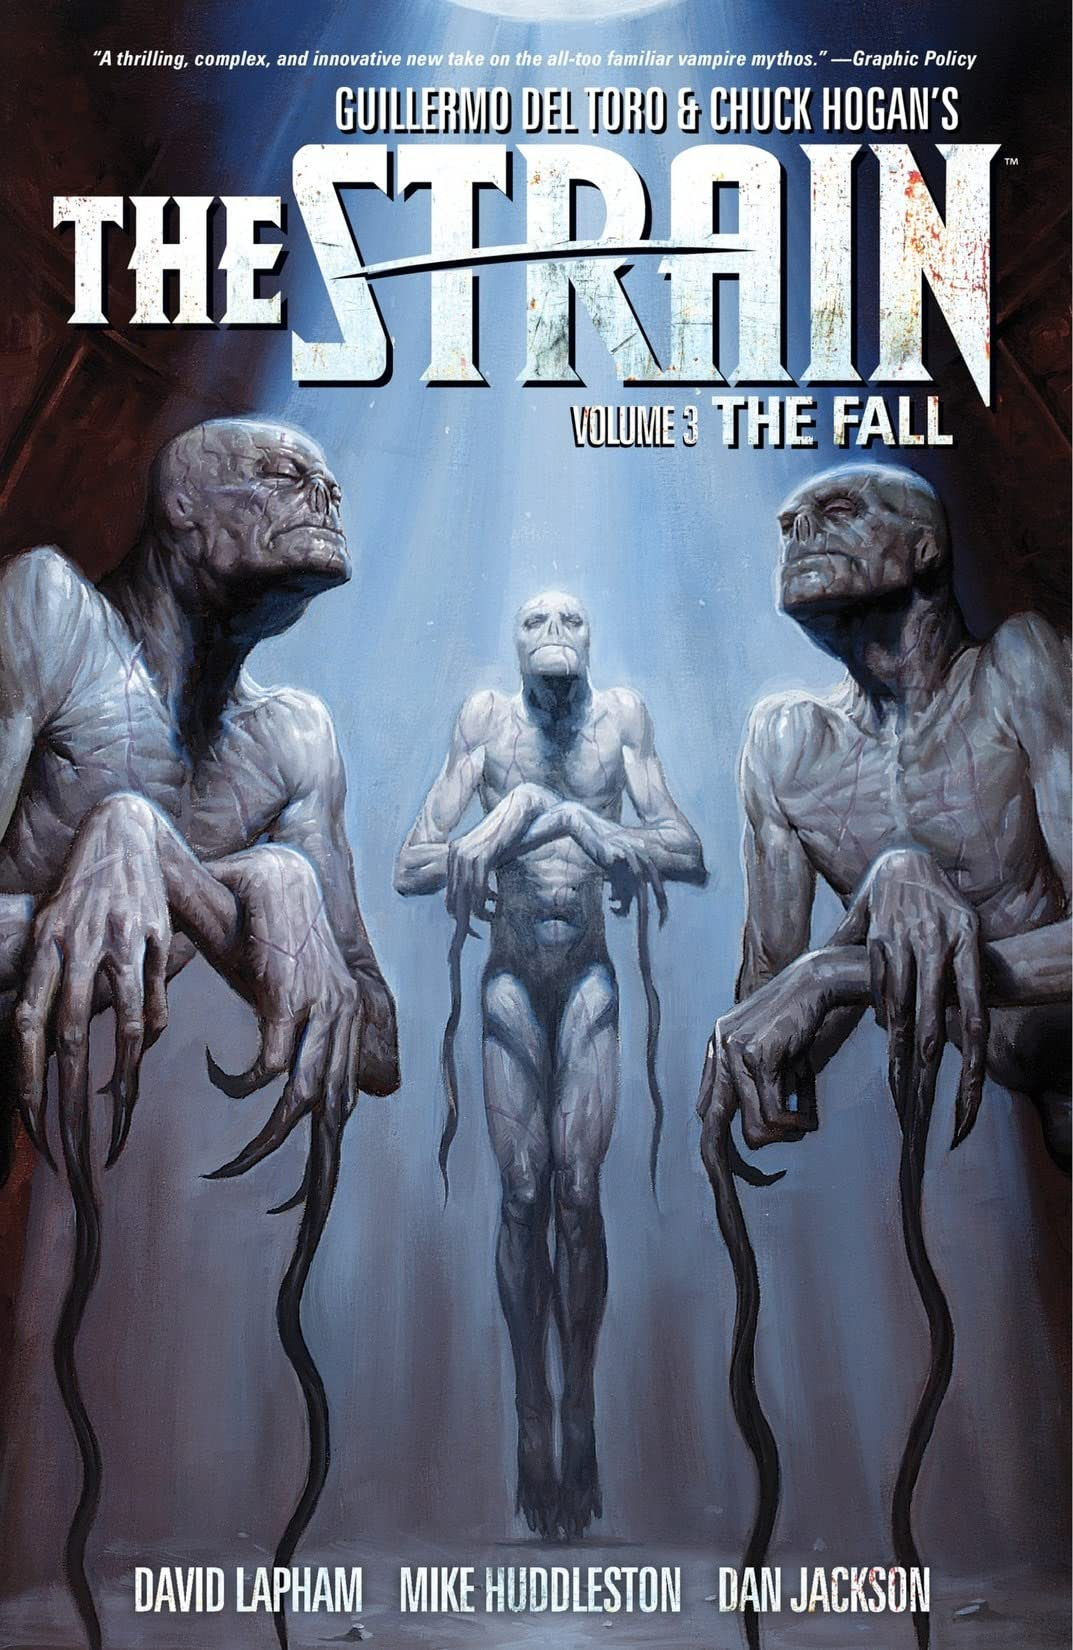 The Strain Vol. 3: The Fall